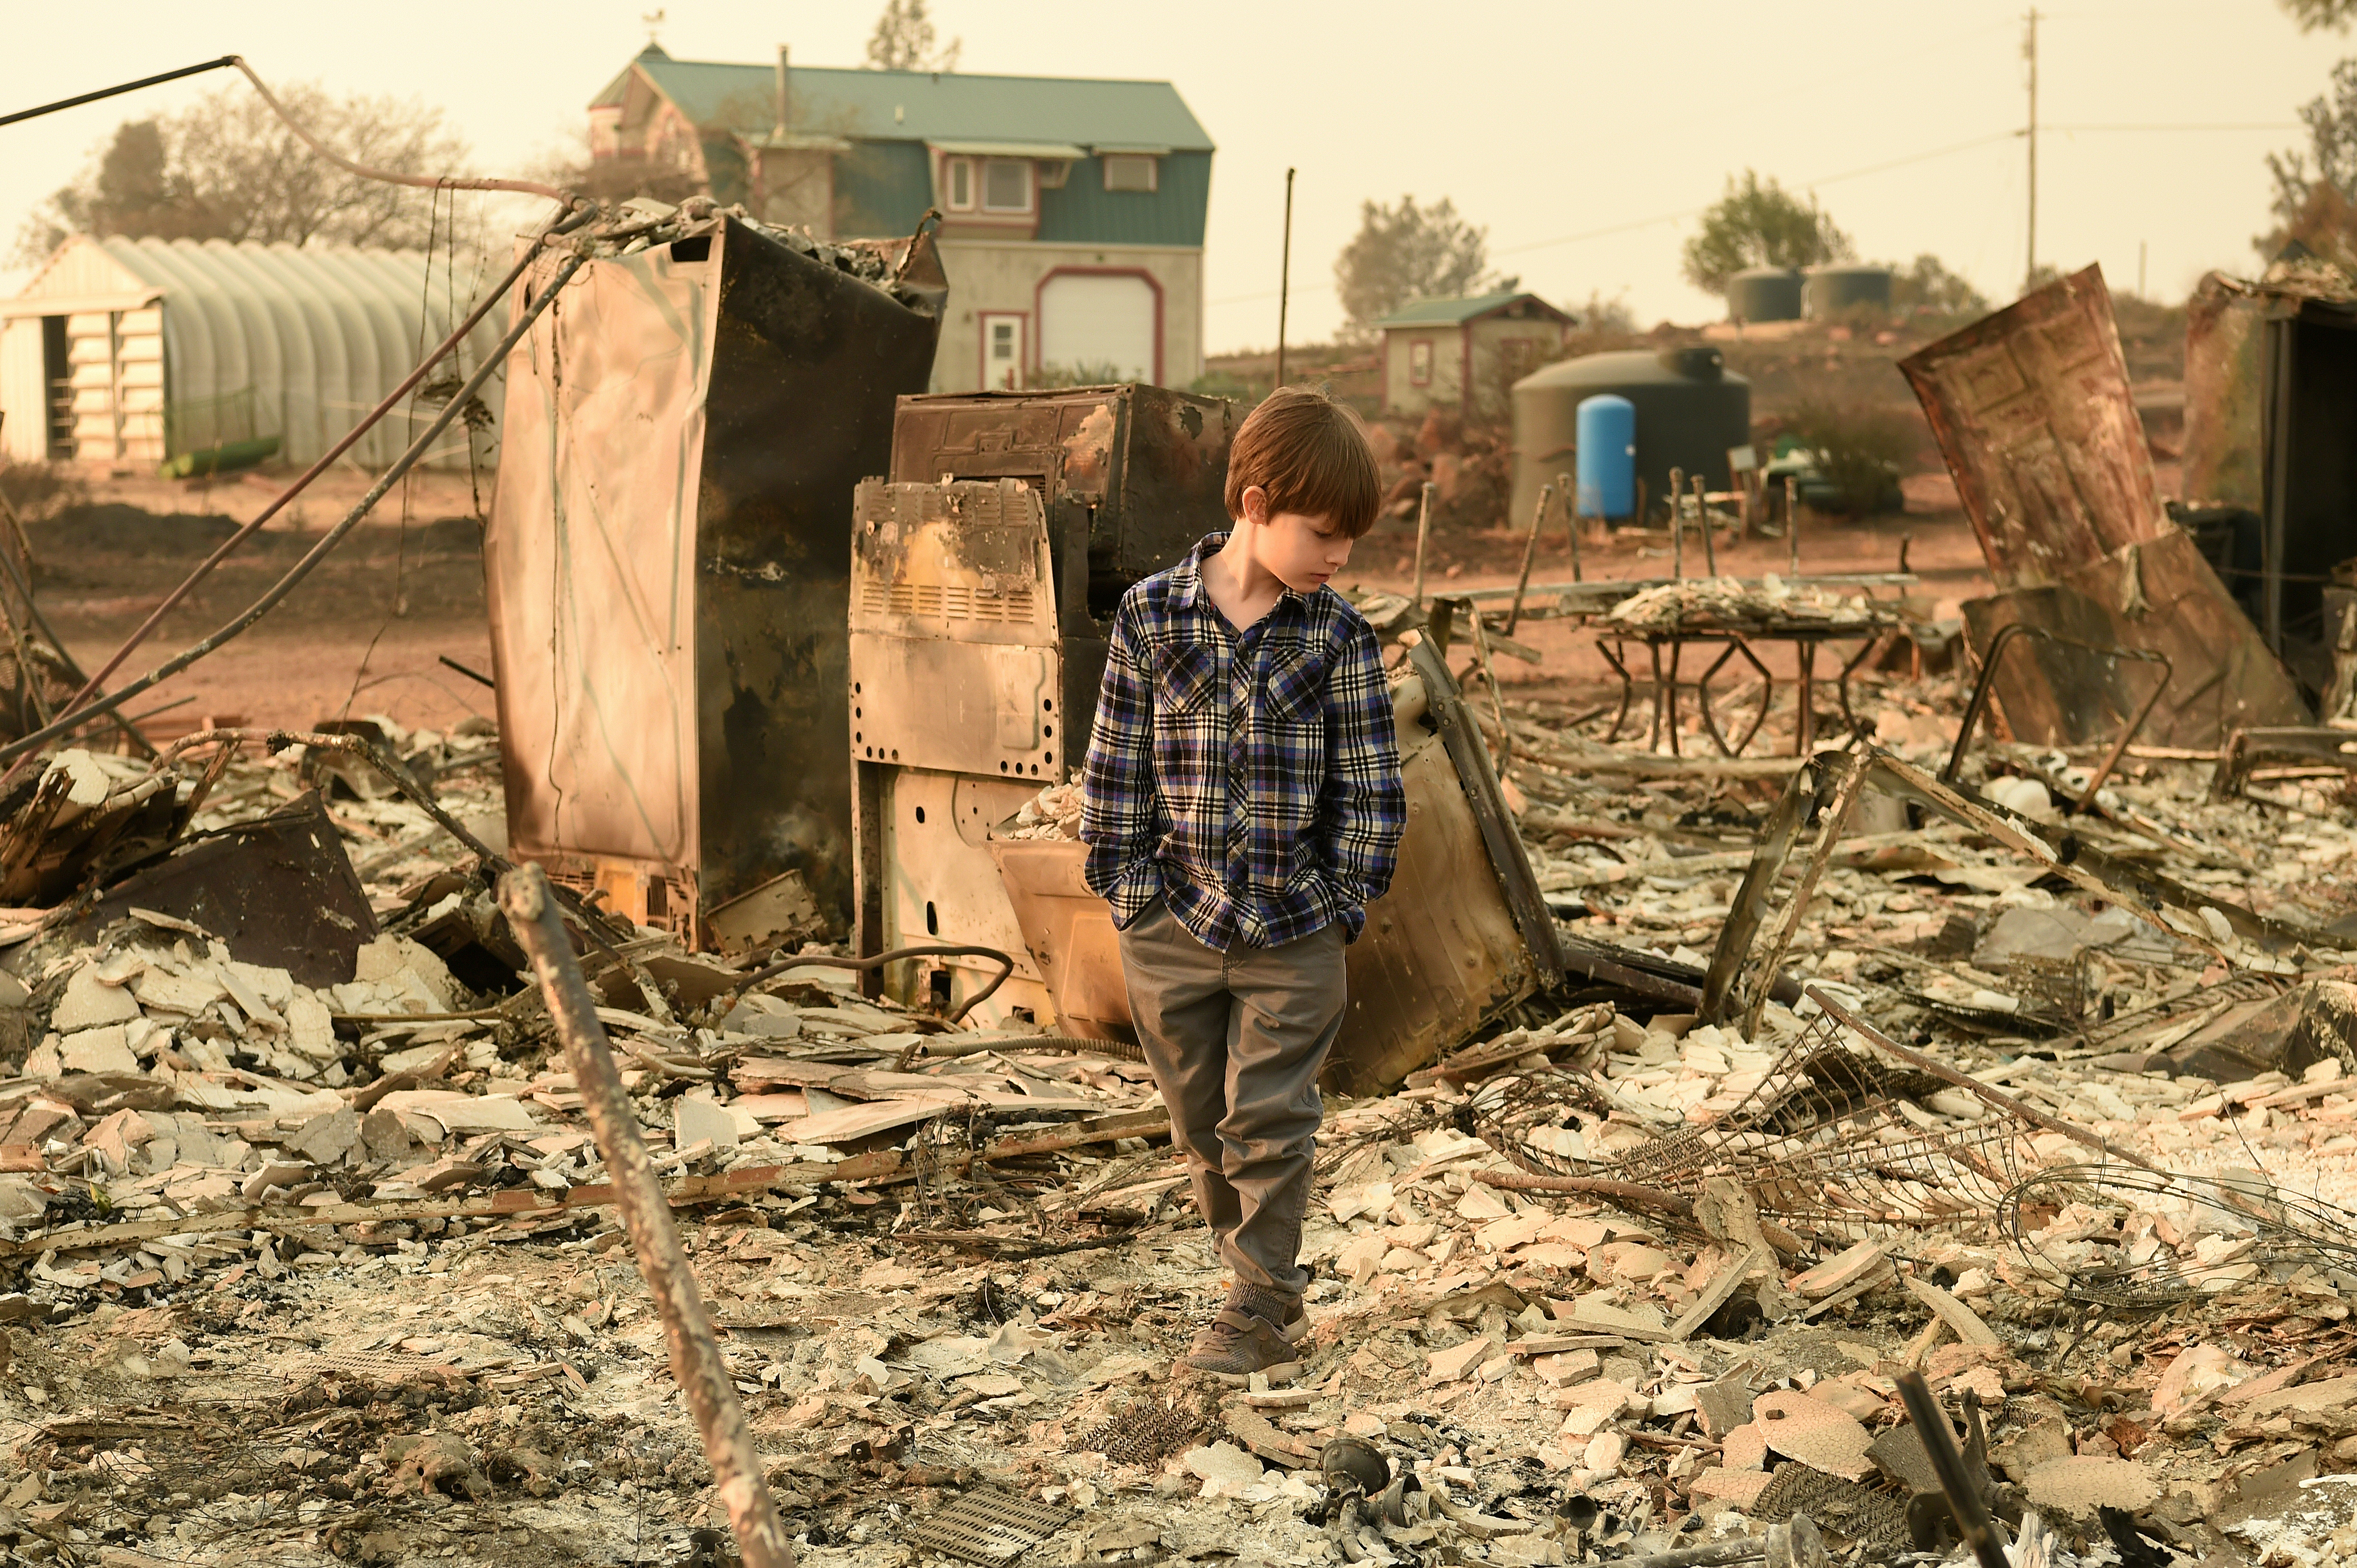 Jacob Saylors, 11, walks through the burned remains of his home in Paradise, California on November 18, 2018. The family lost a home in the same spot to a fire 10 years prior.